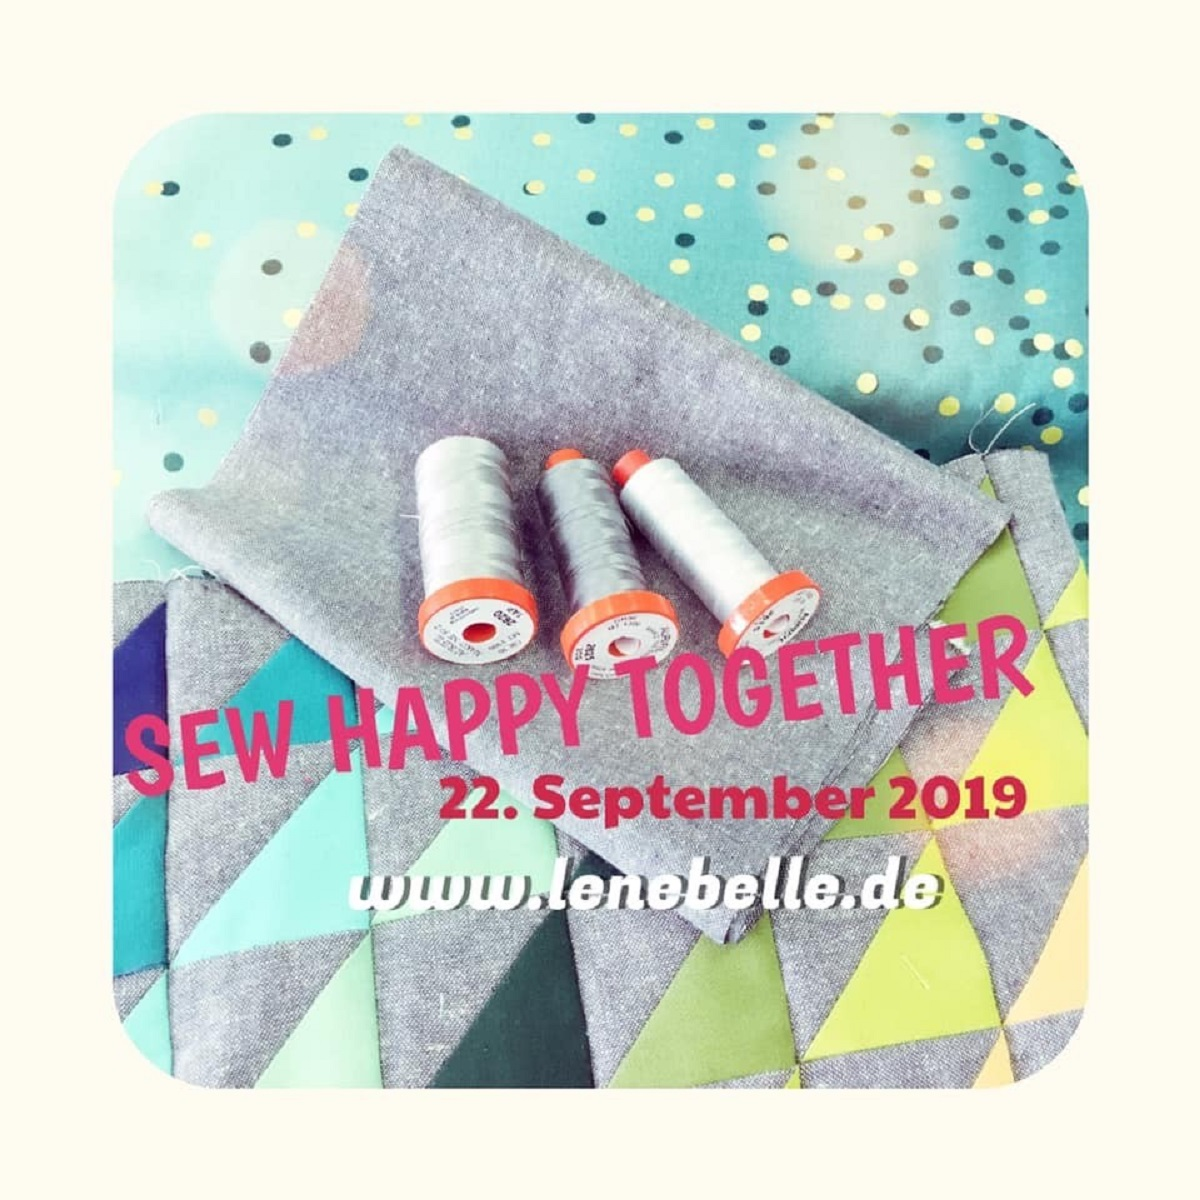 SEW HAPPY TOGETHER - unser Nähevent im September